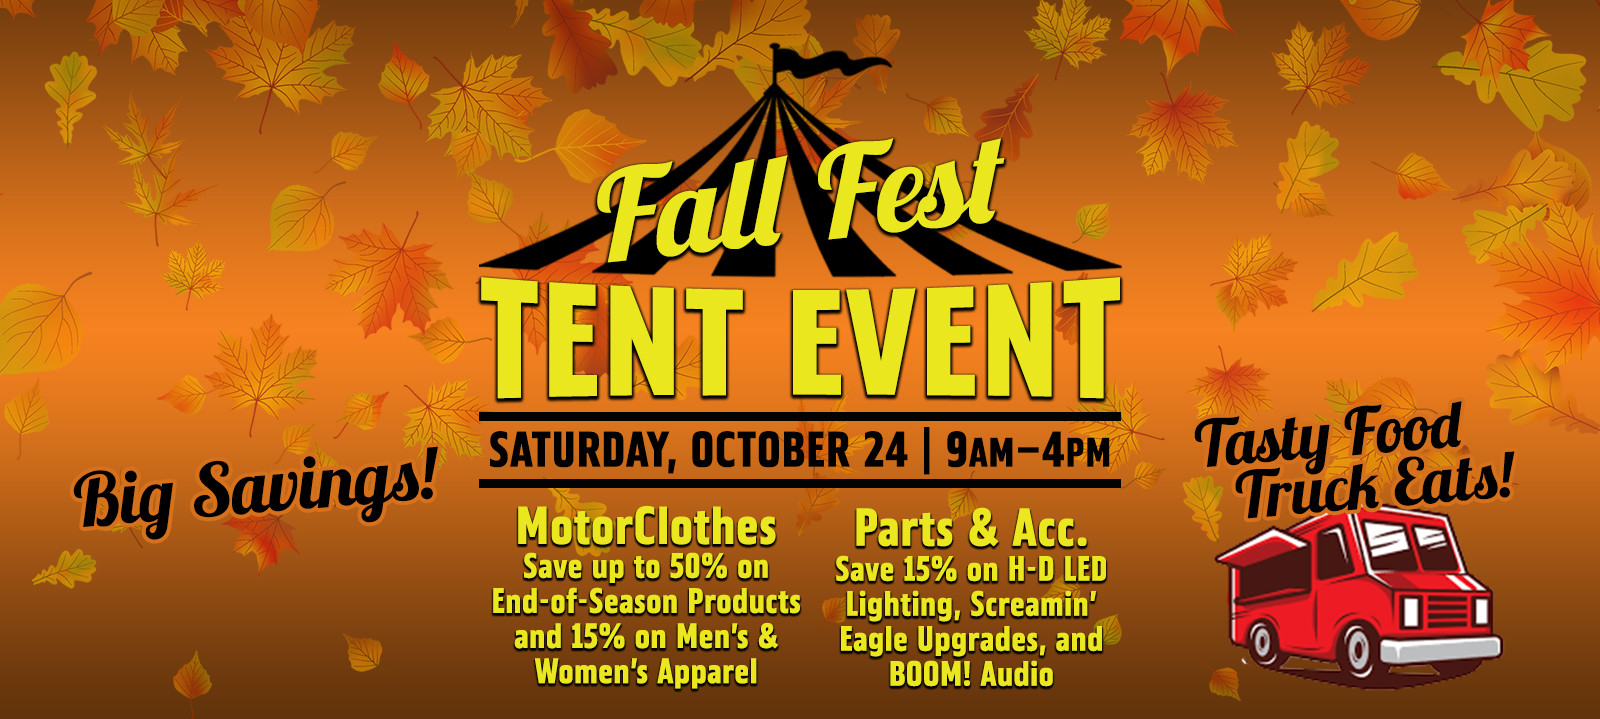 Fall Fest Tent Event